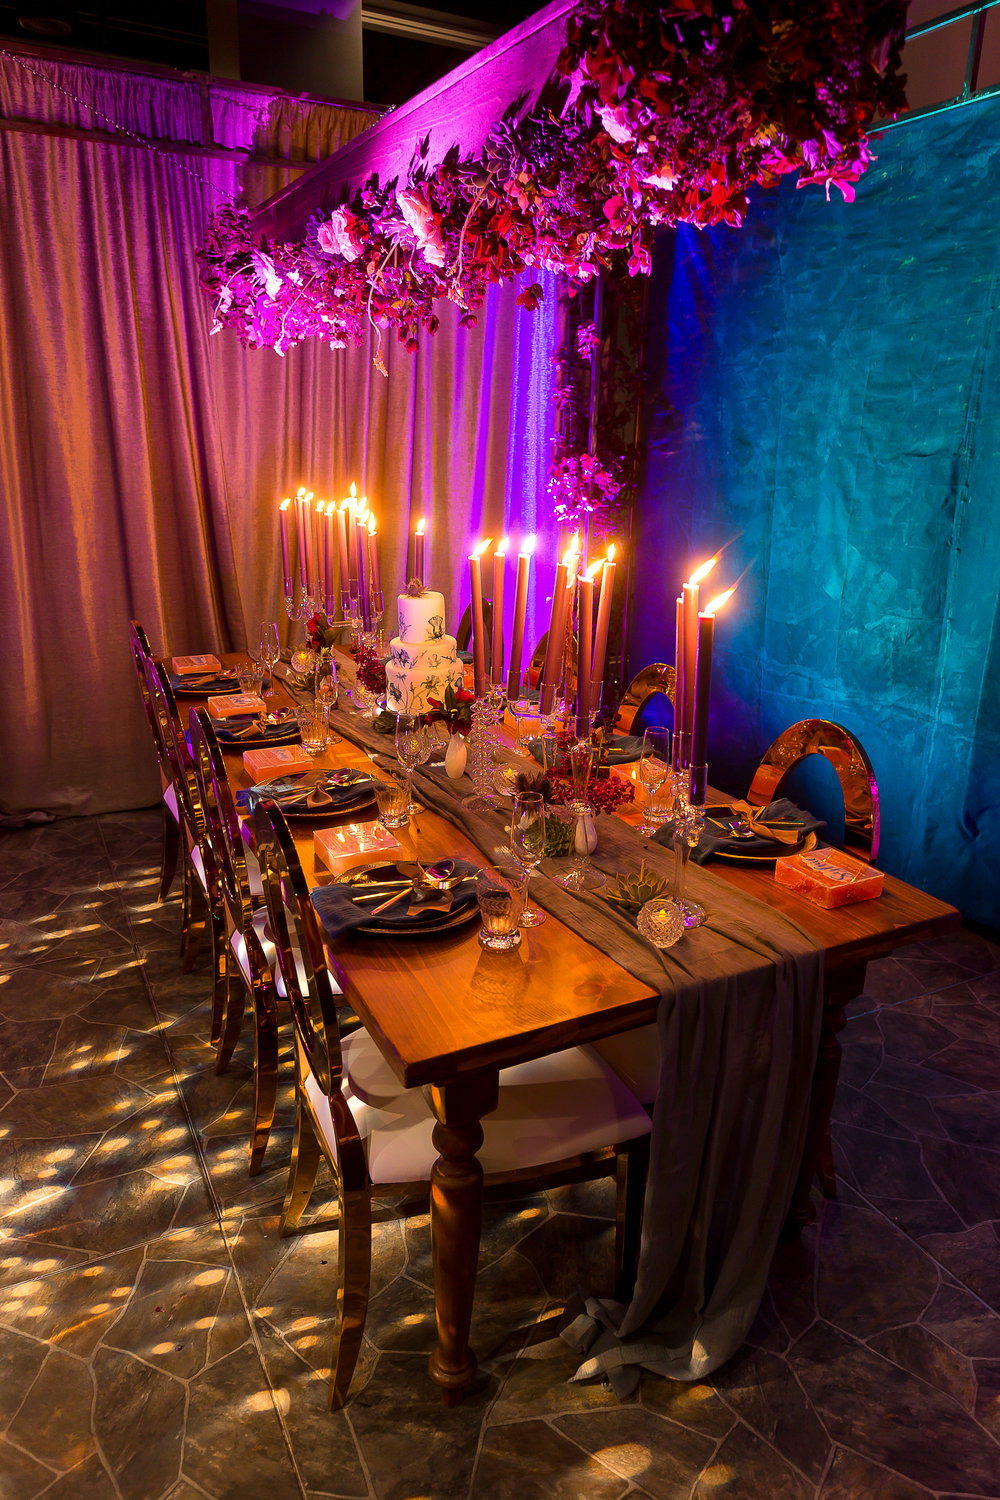 008-Chantal-Events-Space&Details.jpg